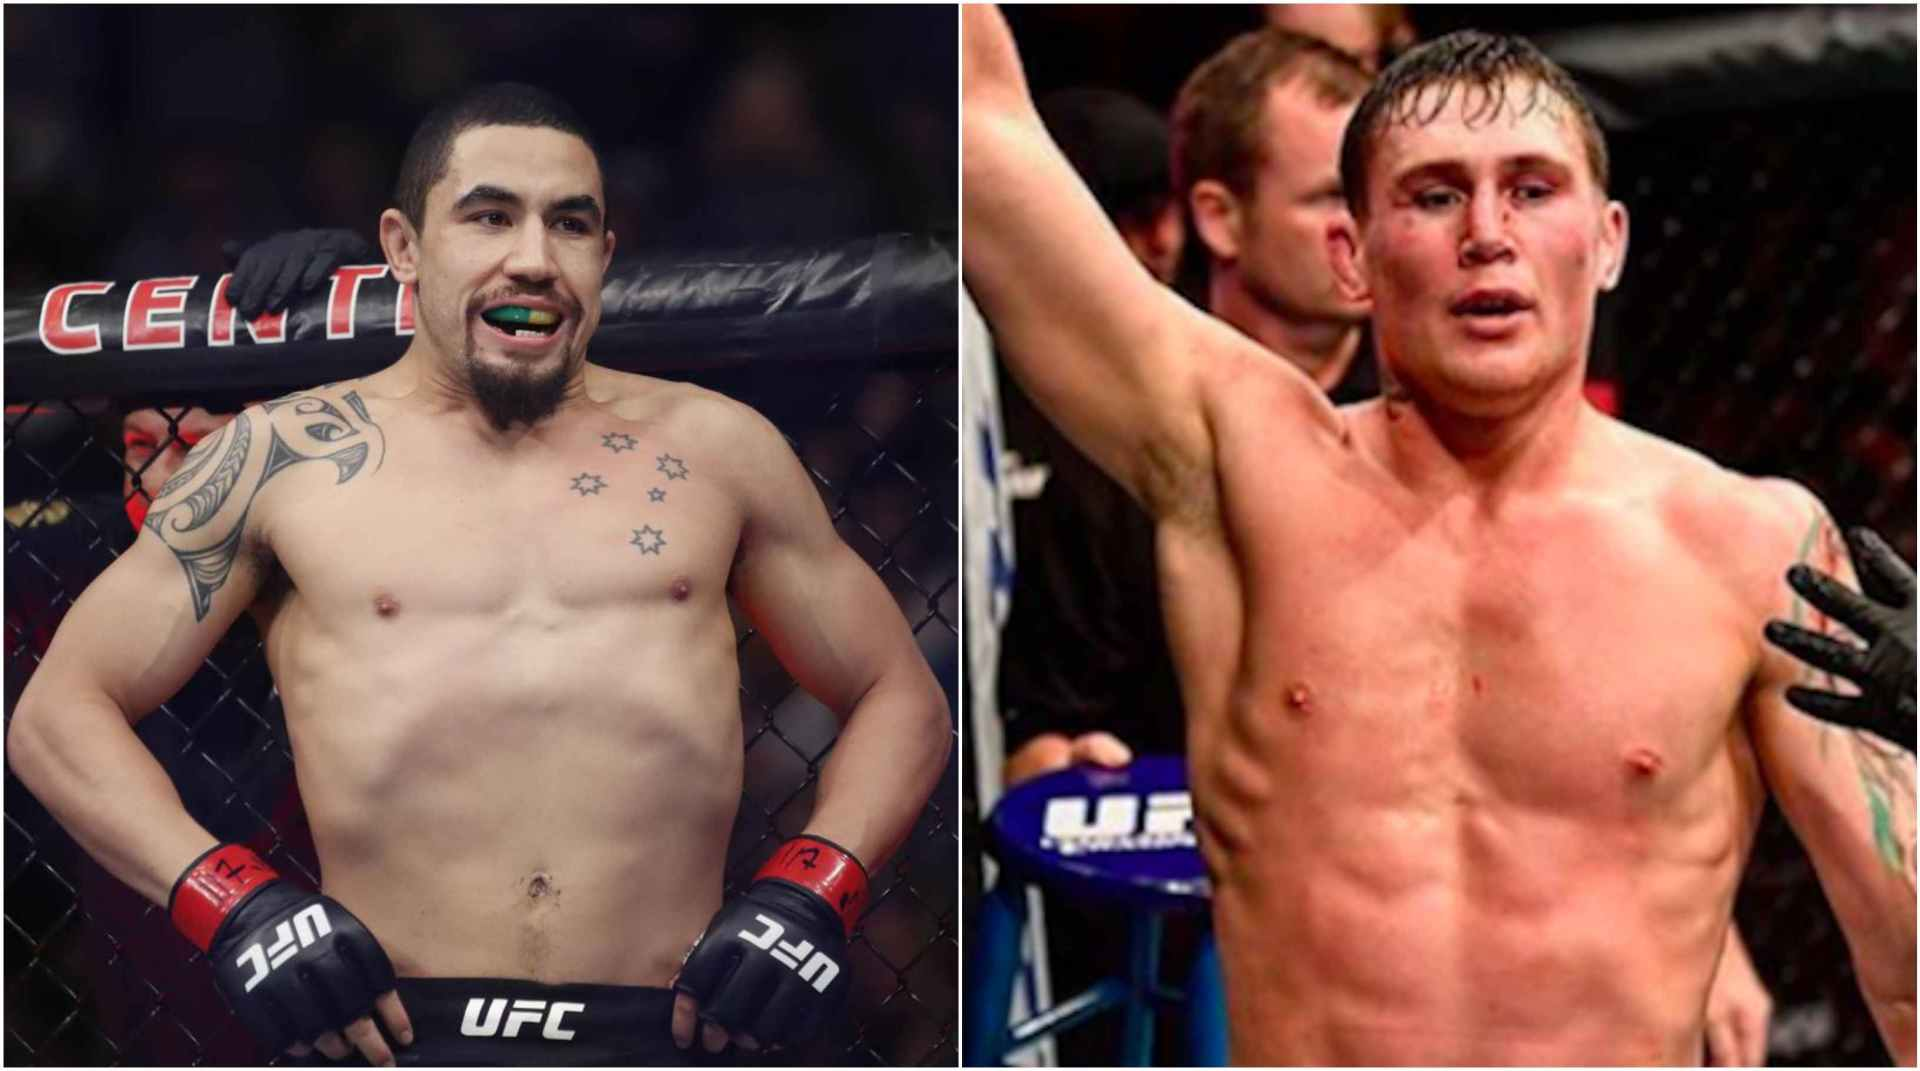 Robert Whittaker impressed by Darren Till's performance at UFC 244 - Till